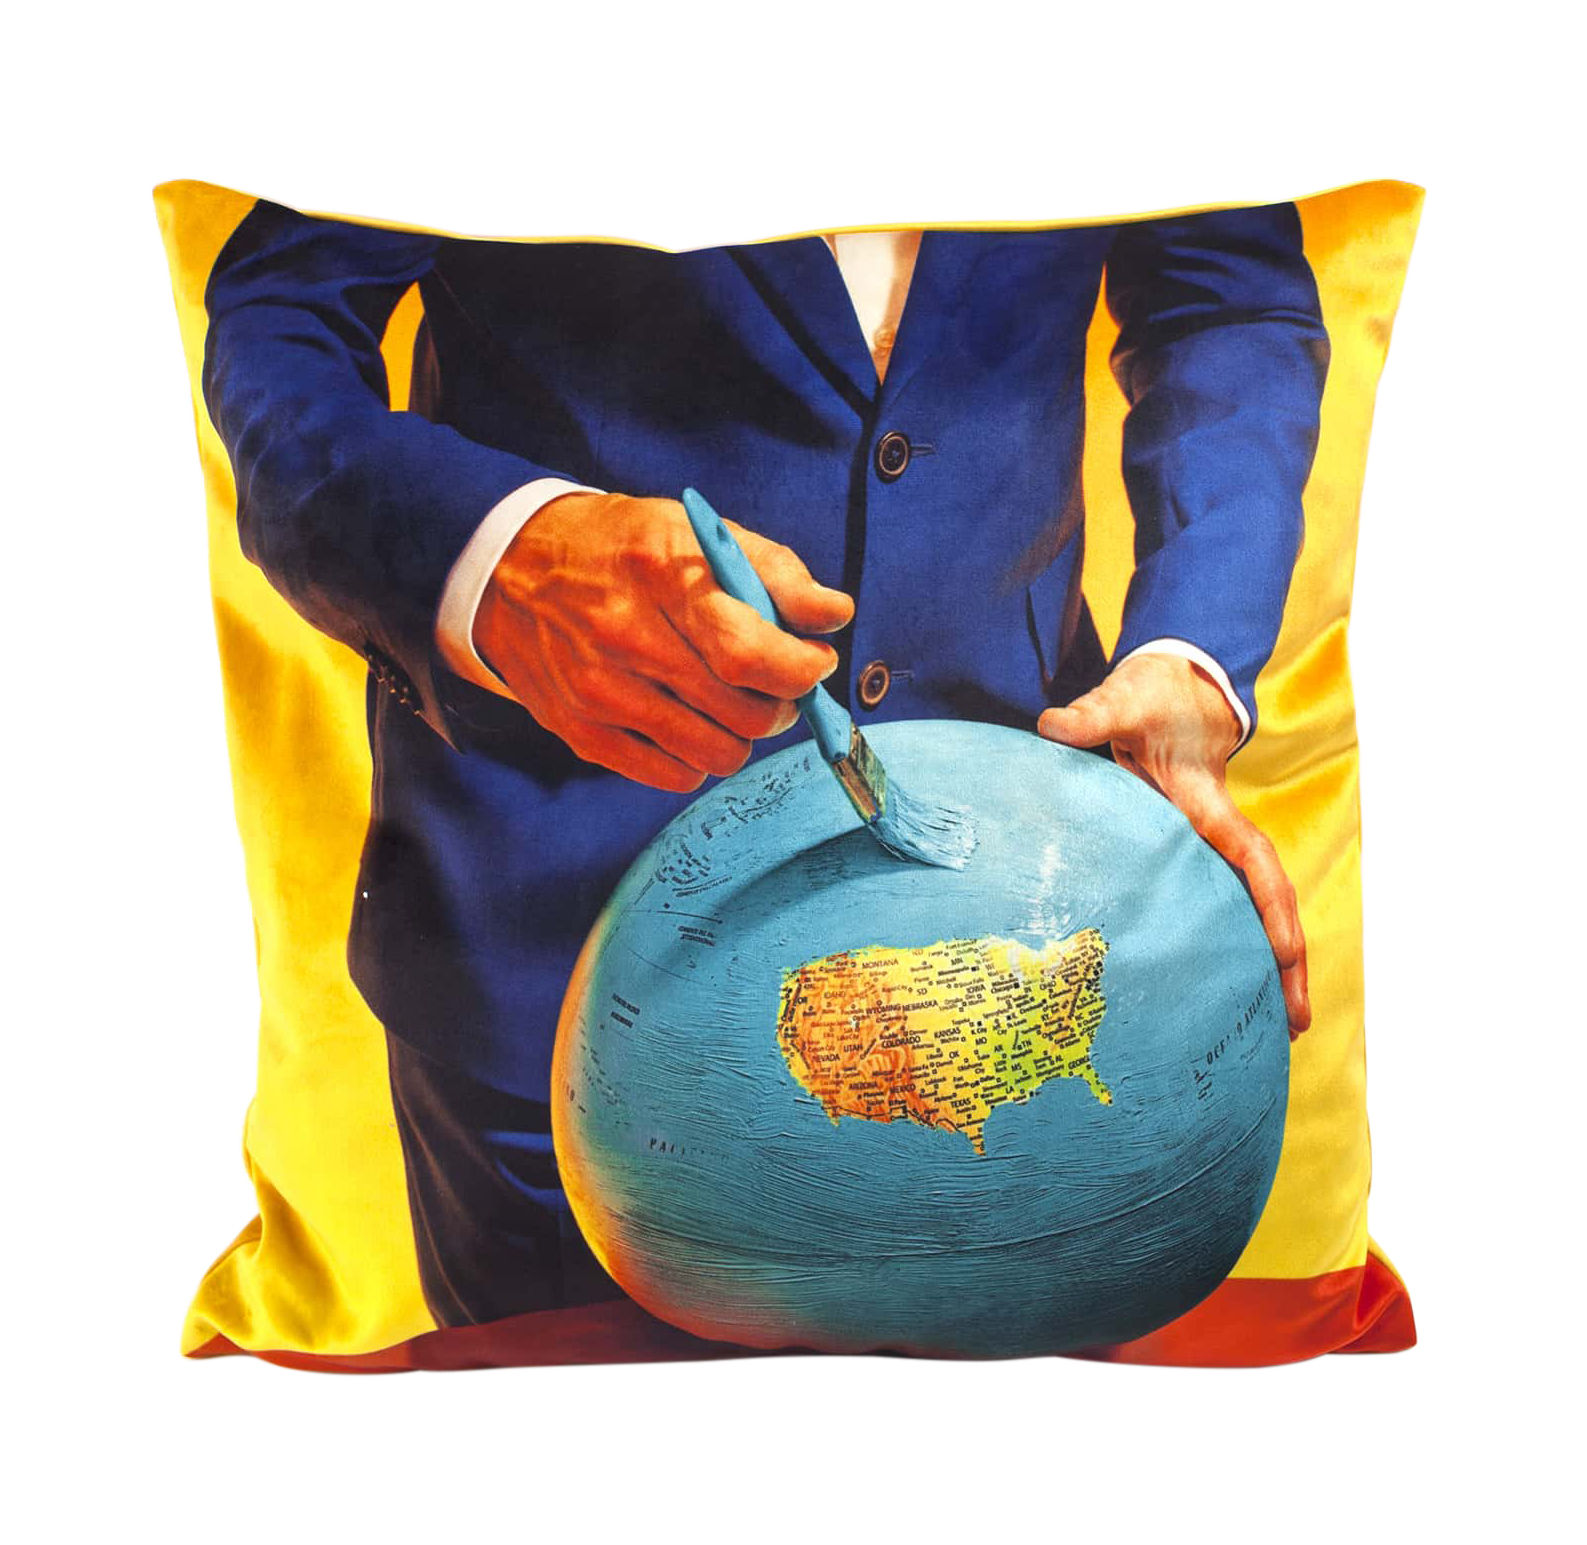 Decoration - Cushions & Poufs - Toiletpaper Cushion - / Globe - 50 x 50 cm by Seletti - Globe / Multicolore - Feathers, Polyester fabric